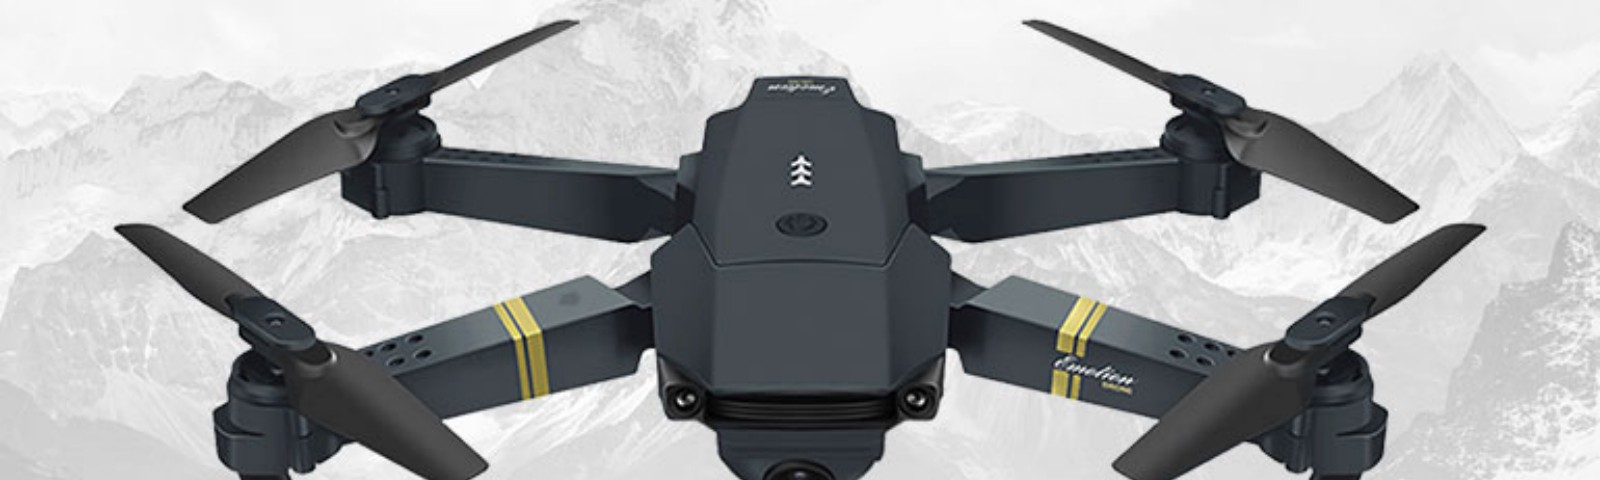 Top stories about Dronex Pro written in November of 2019 - M